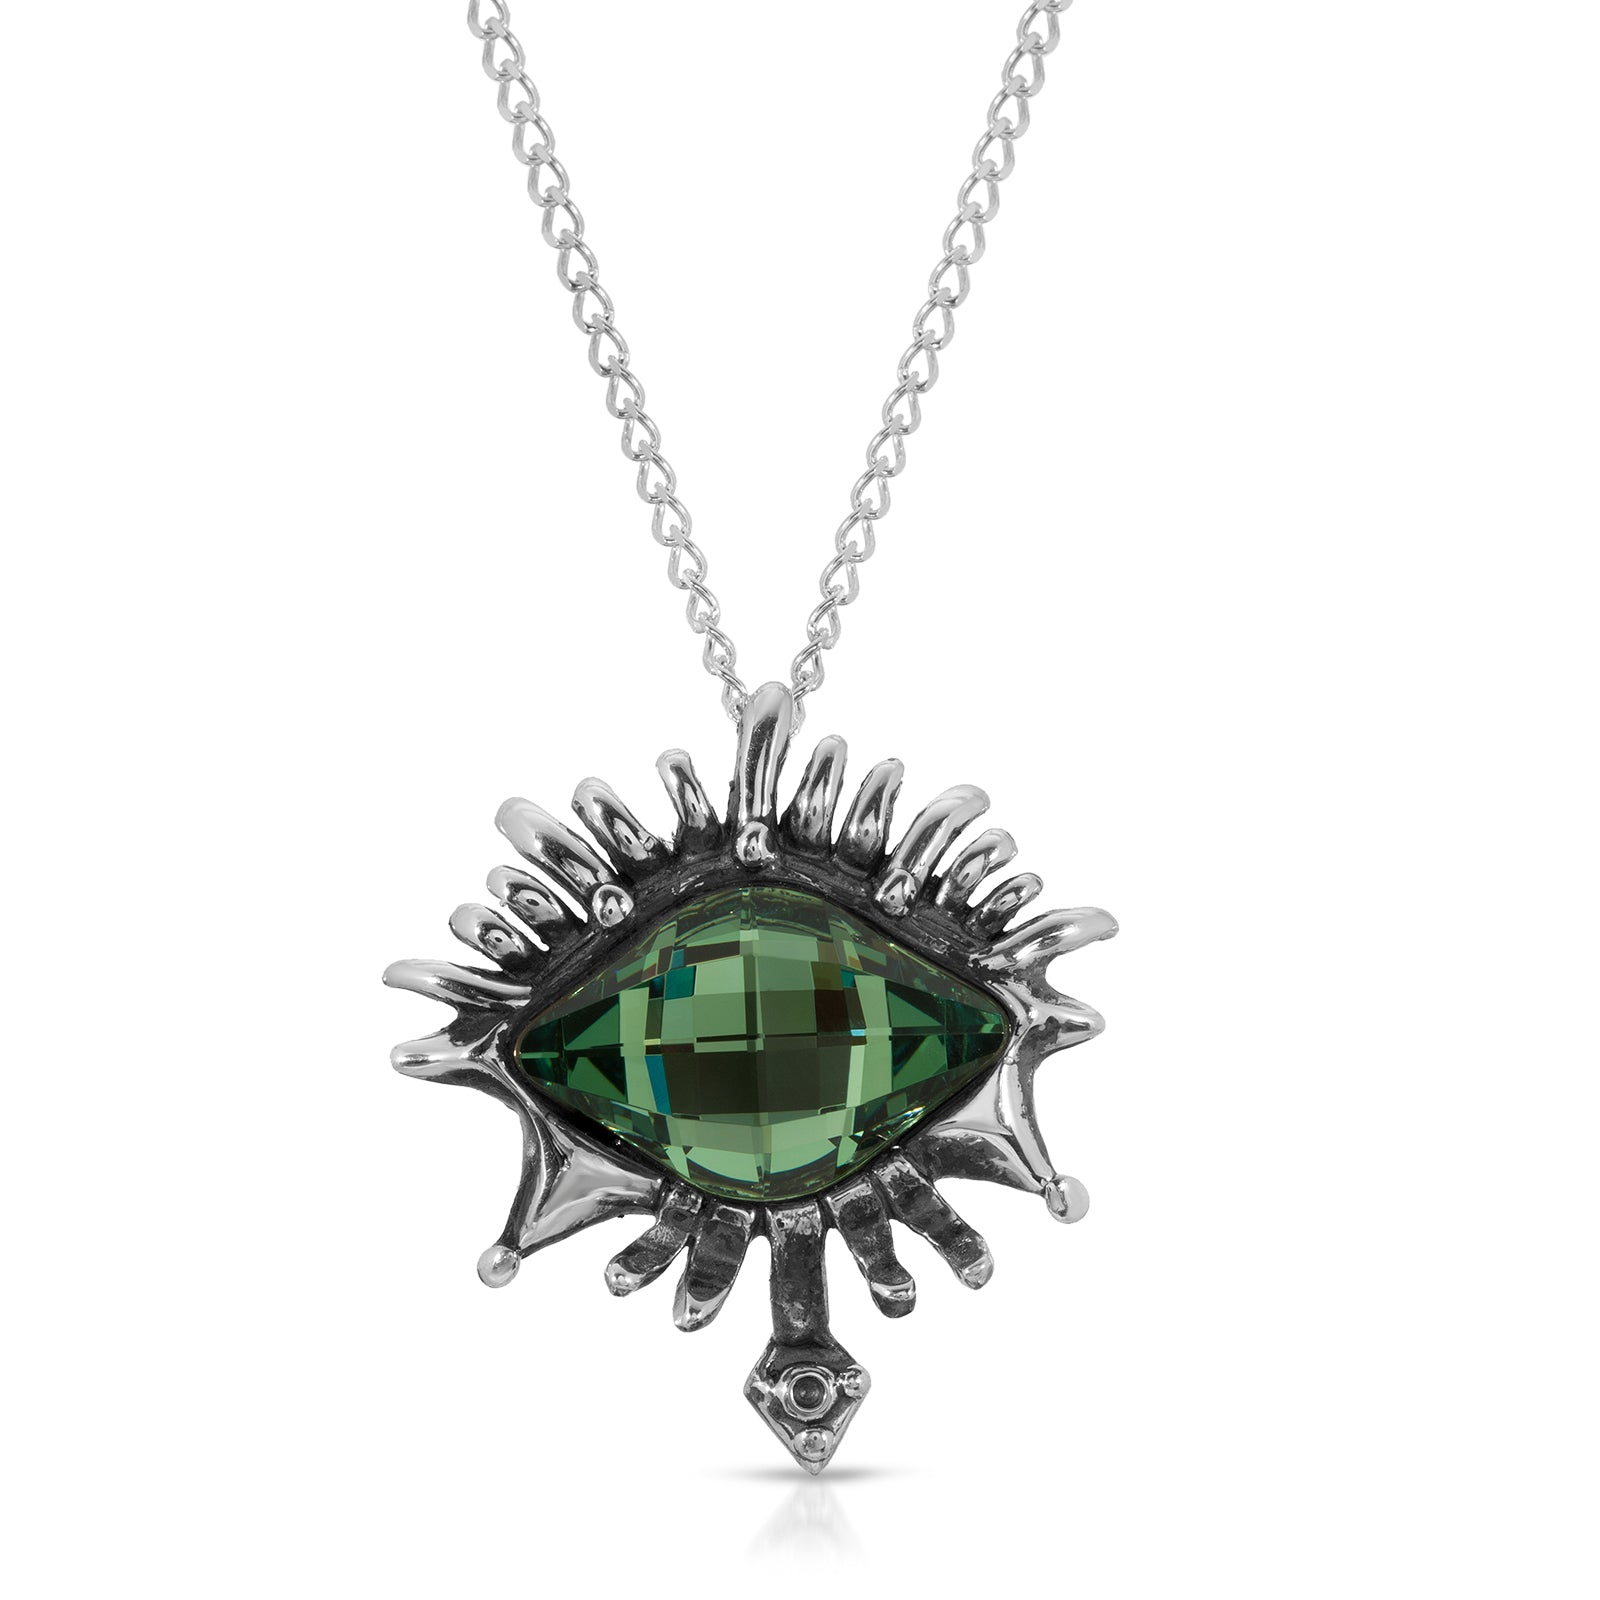 The W Brothers Premium Grade A 925 Sterling Silver Emerald Vision Swarovski Pendant, perfect for a fashionable statement for men and women's jewelry accessory. Available at www.thewbros.com